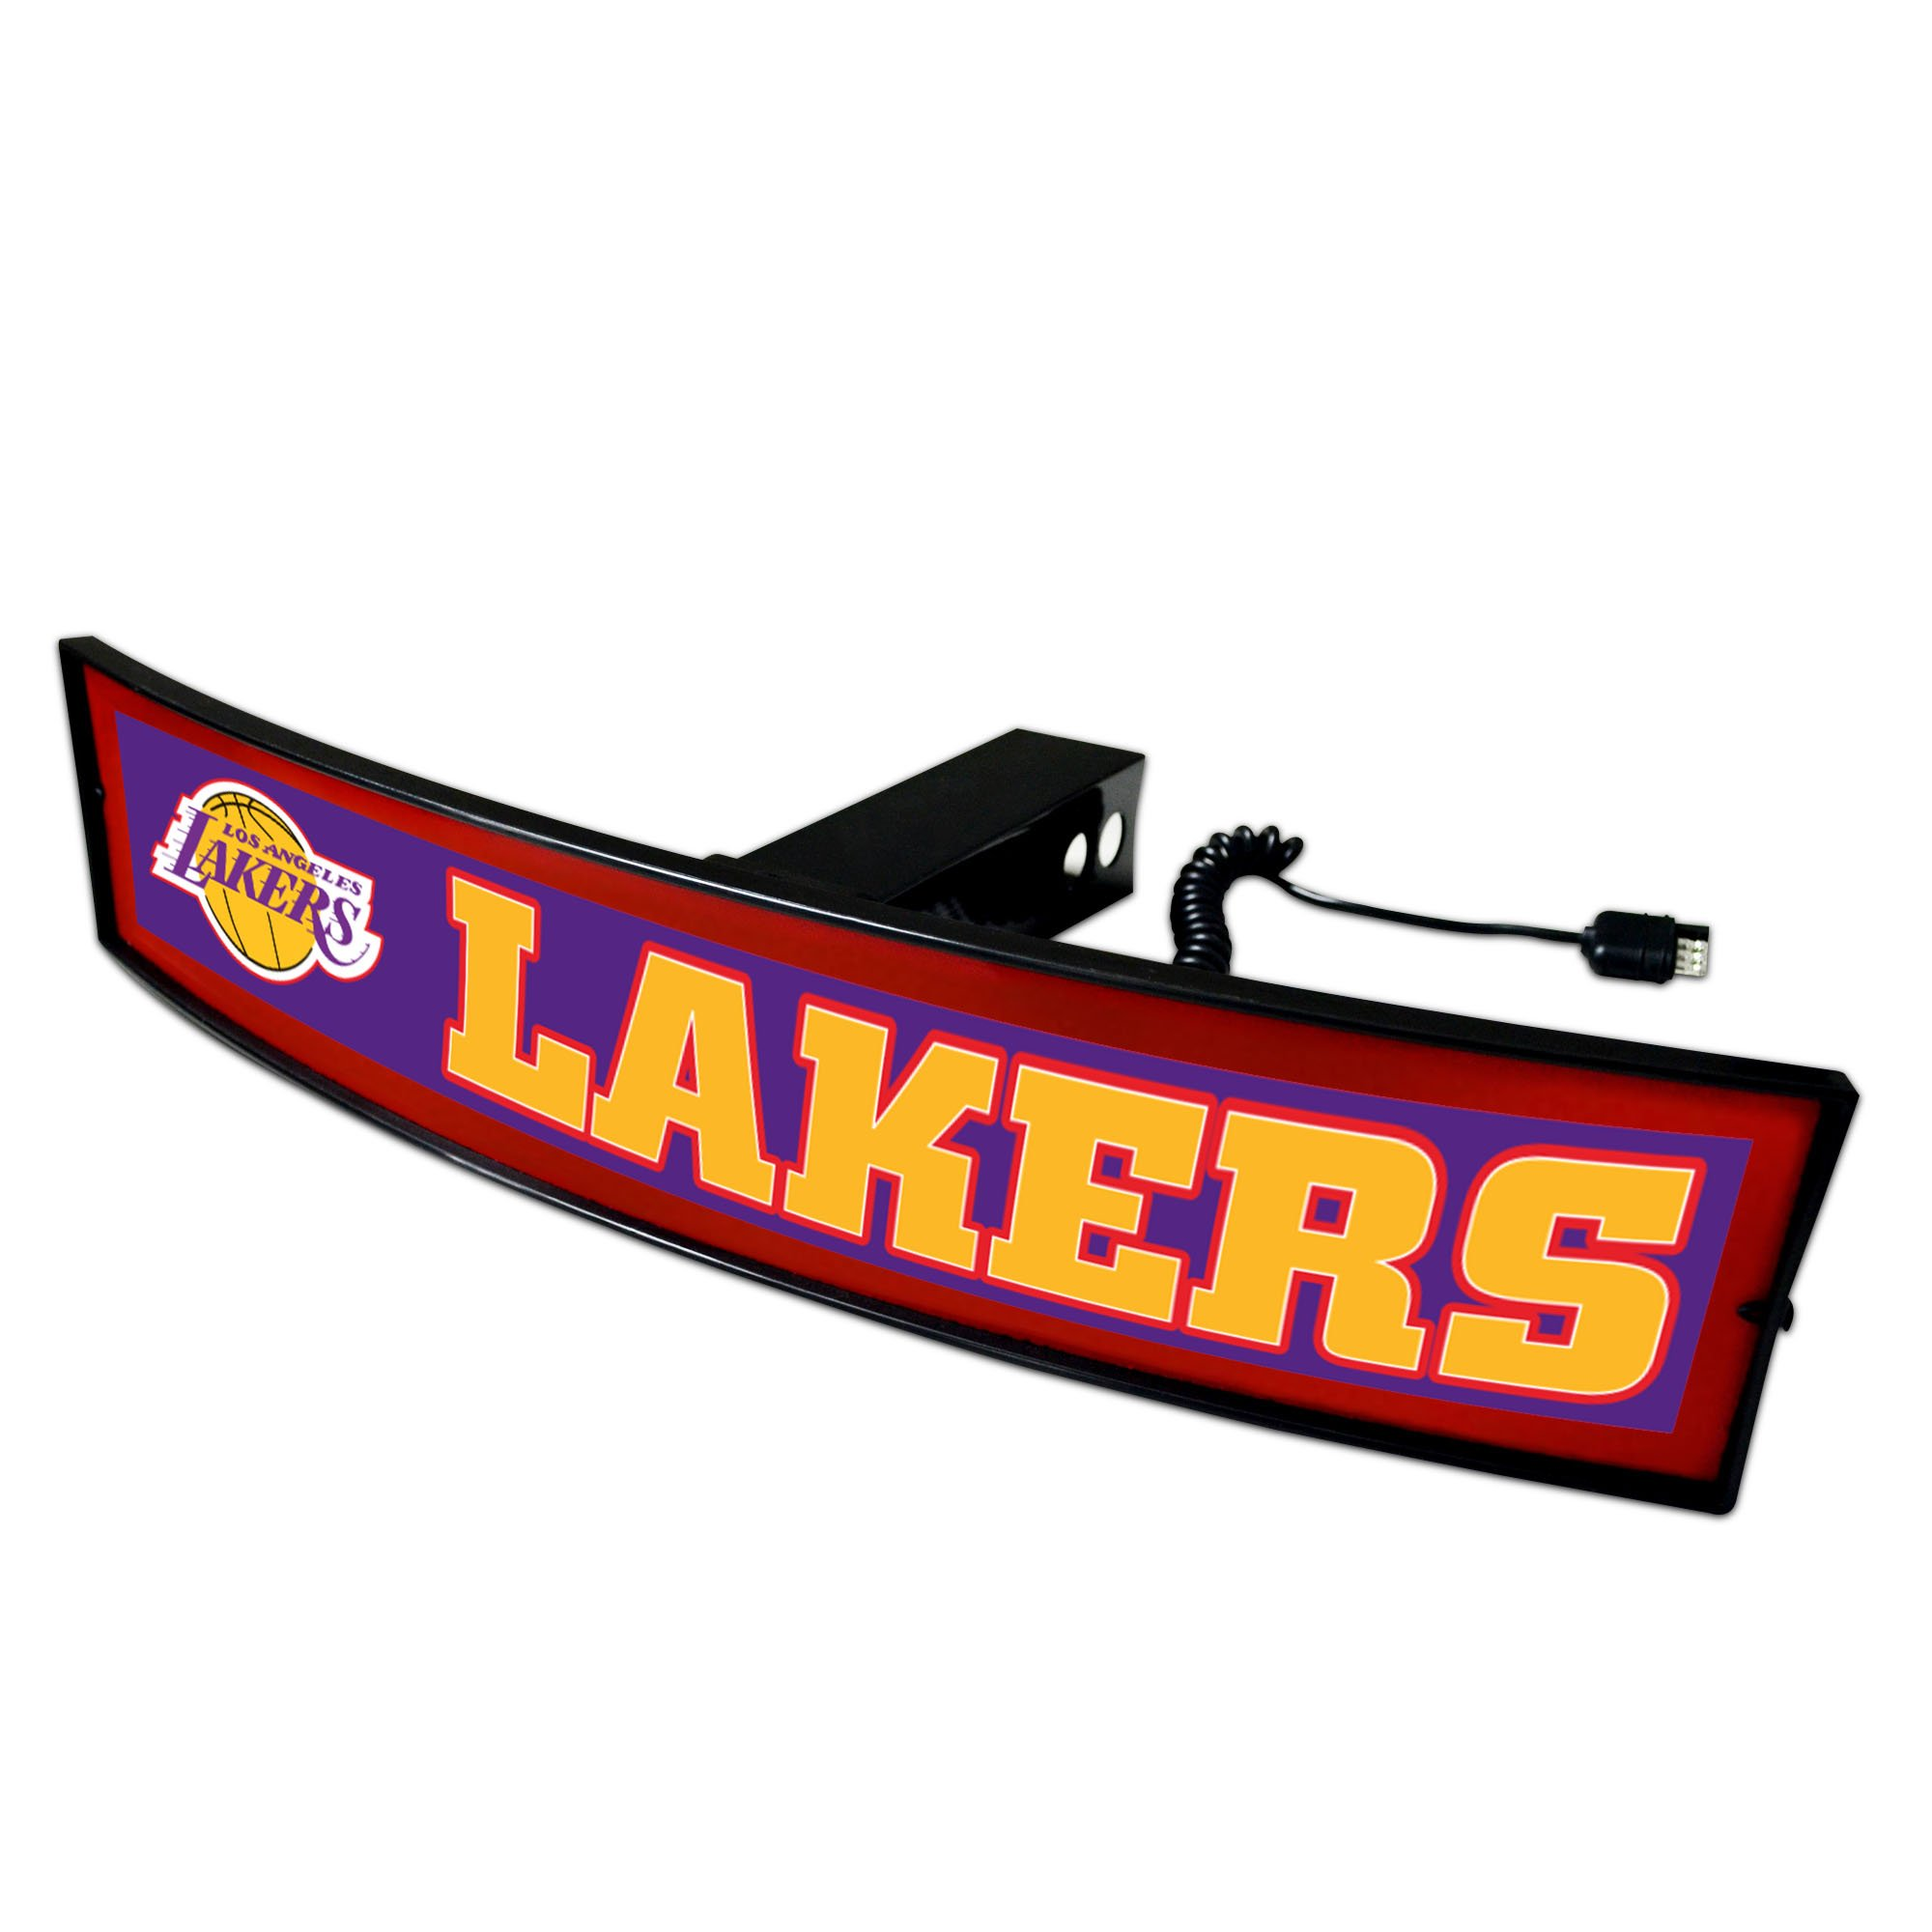 CC Sports Decor NBA - Los Angeles Lakers Light Up Hitch Cover - 21''x9.5''